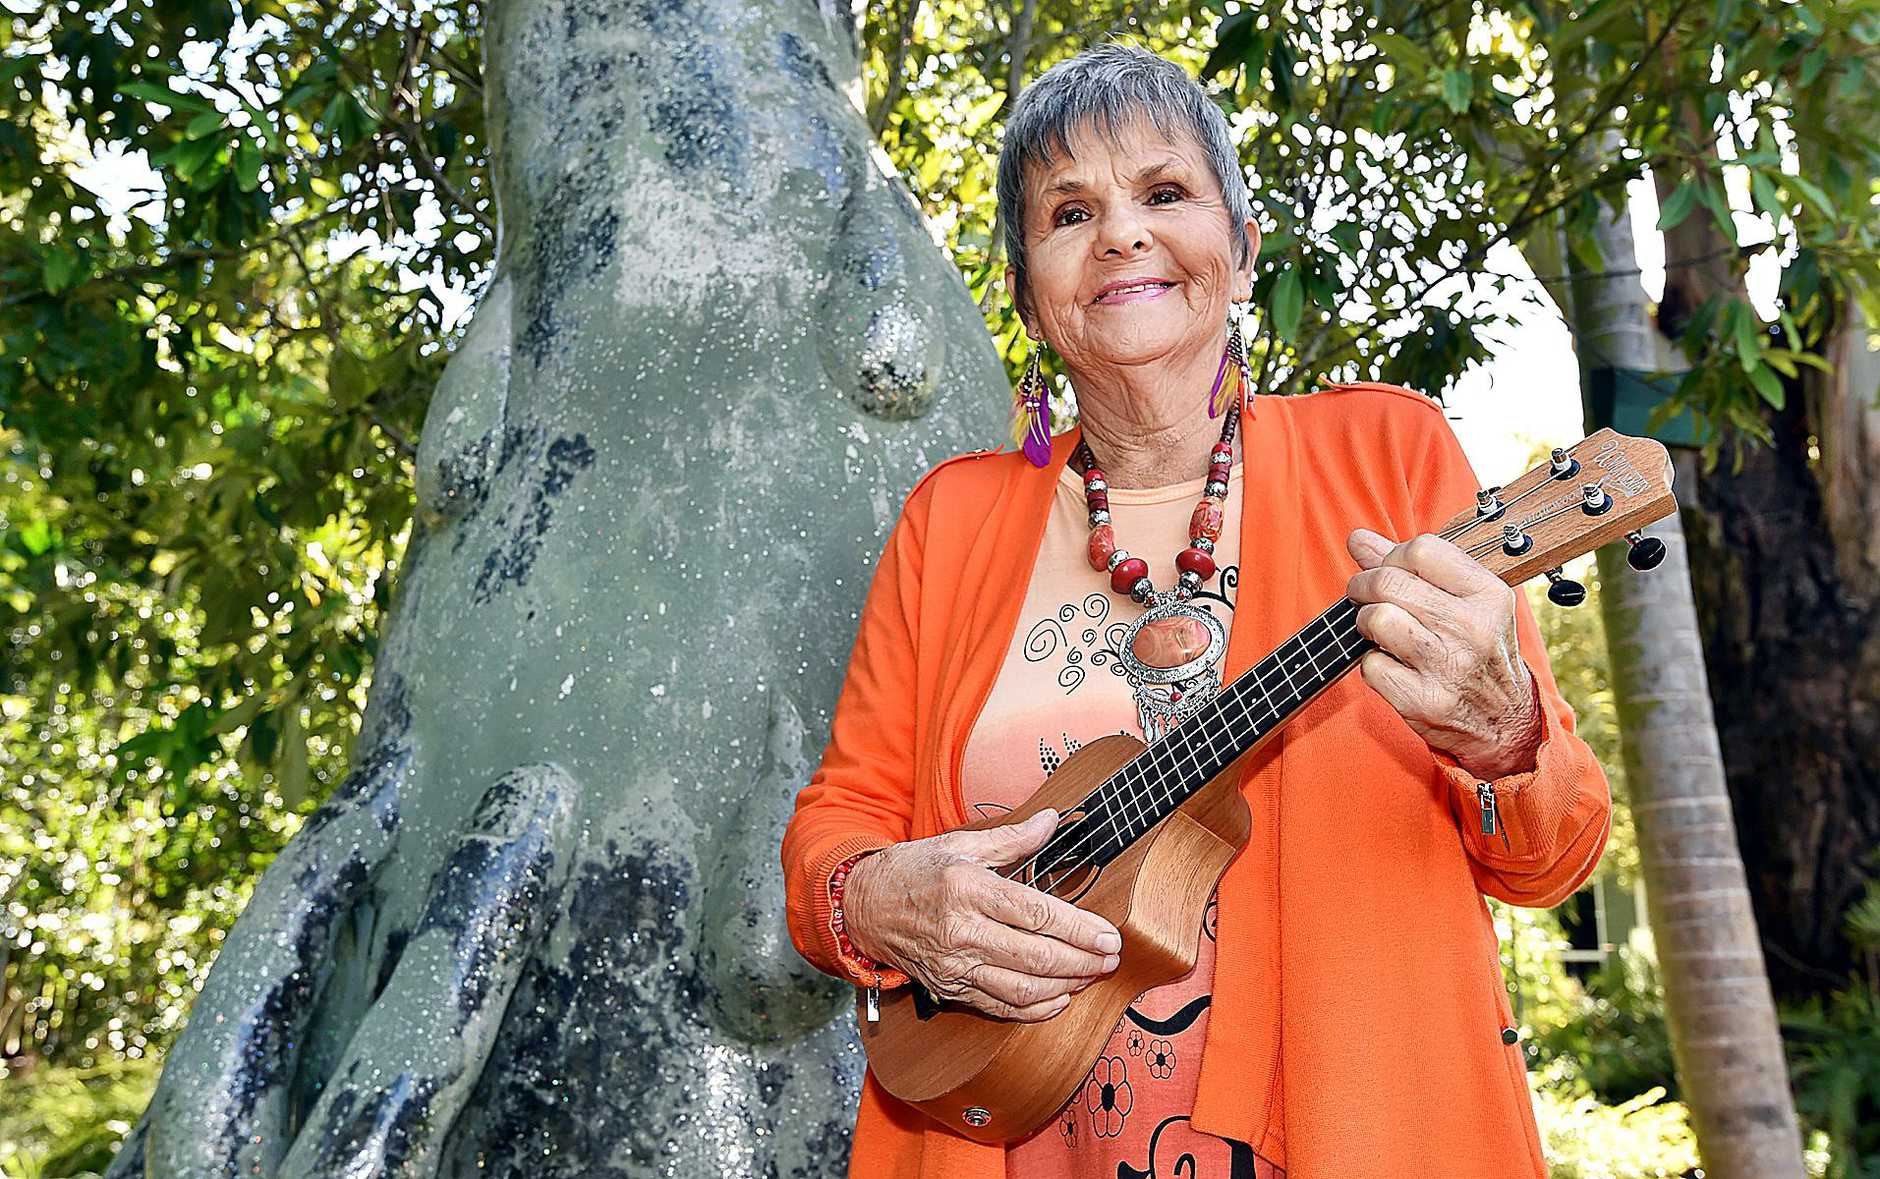 HEALING: Shanti Rahal is heading off to Nepal to play music with the students.